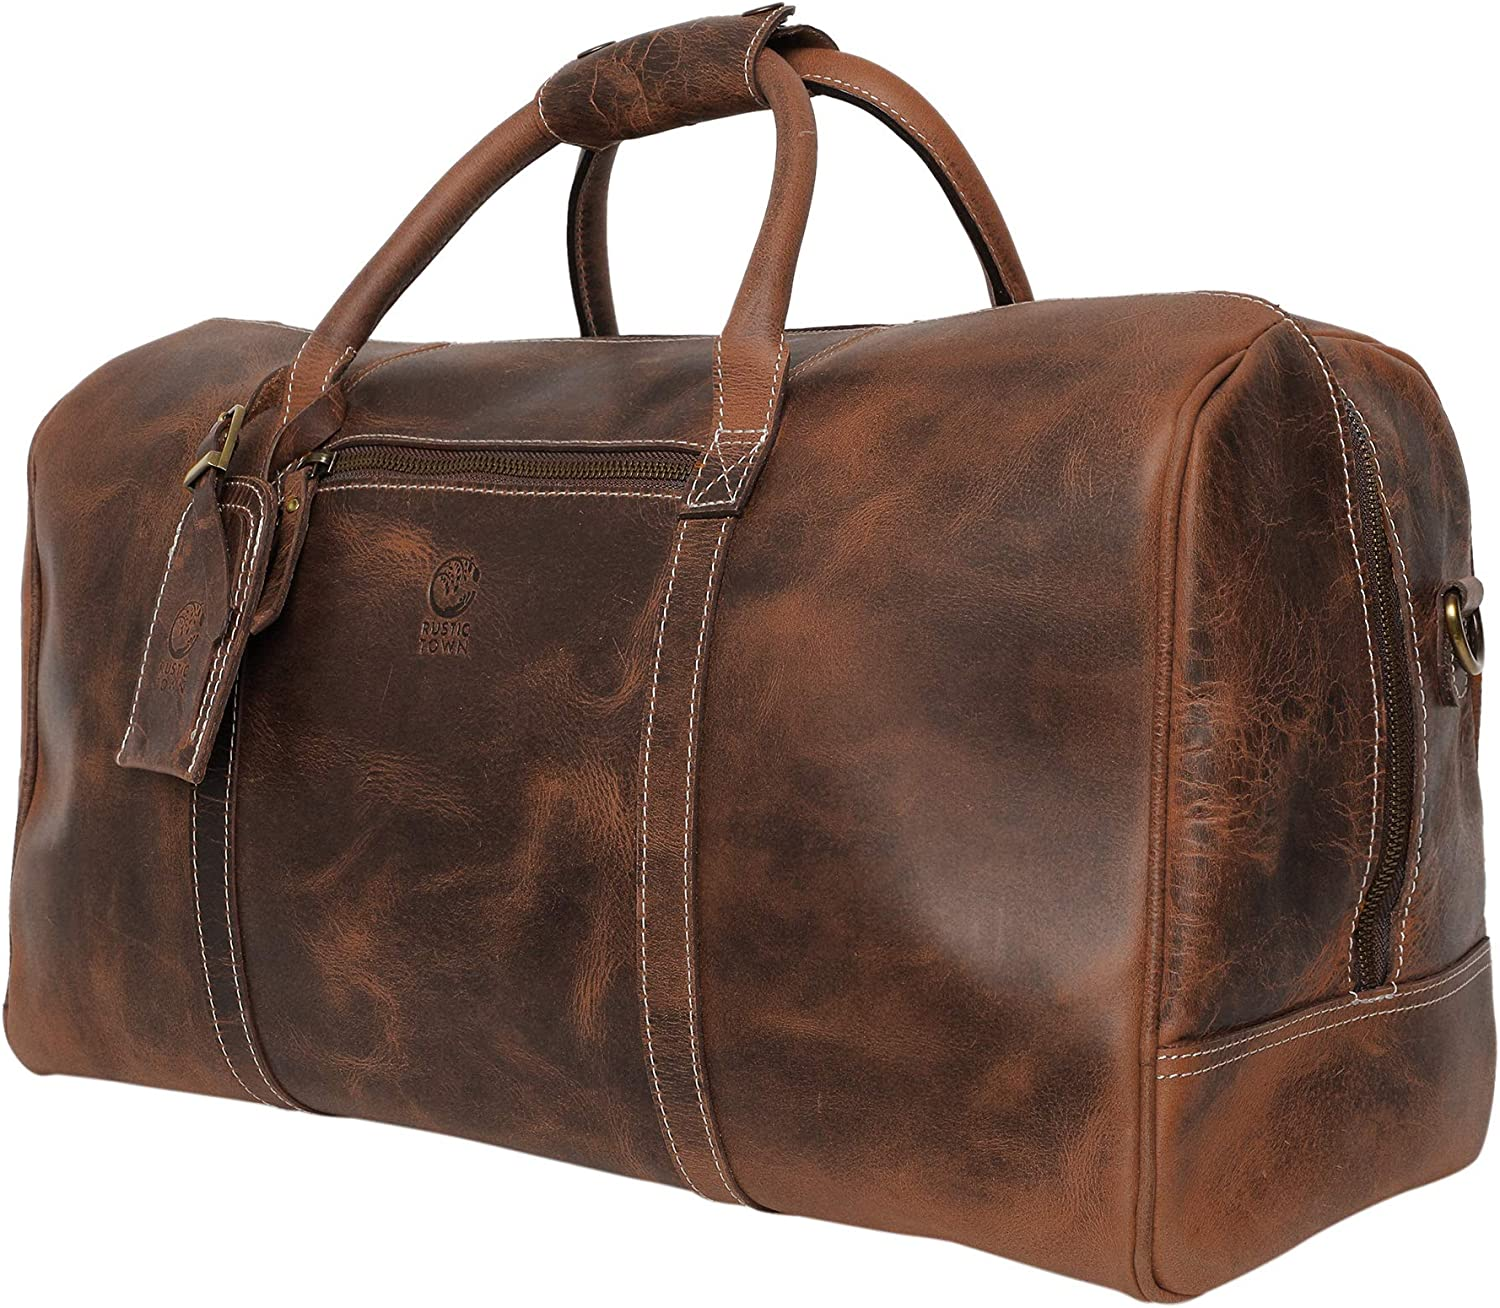 Handmade Leather Travel Duffel Bag – Airplane Underseat Carry On Bags By Rustic Town